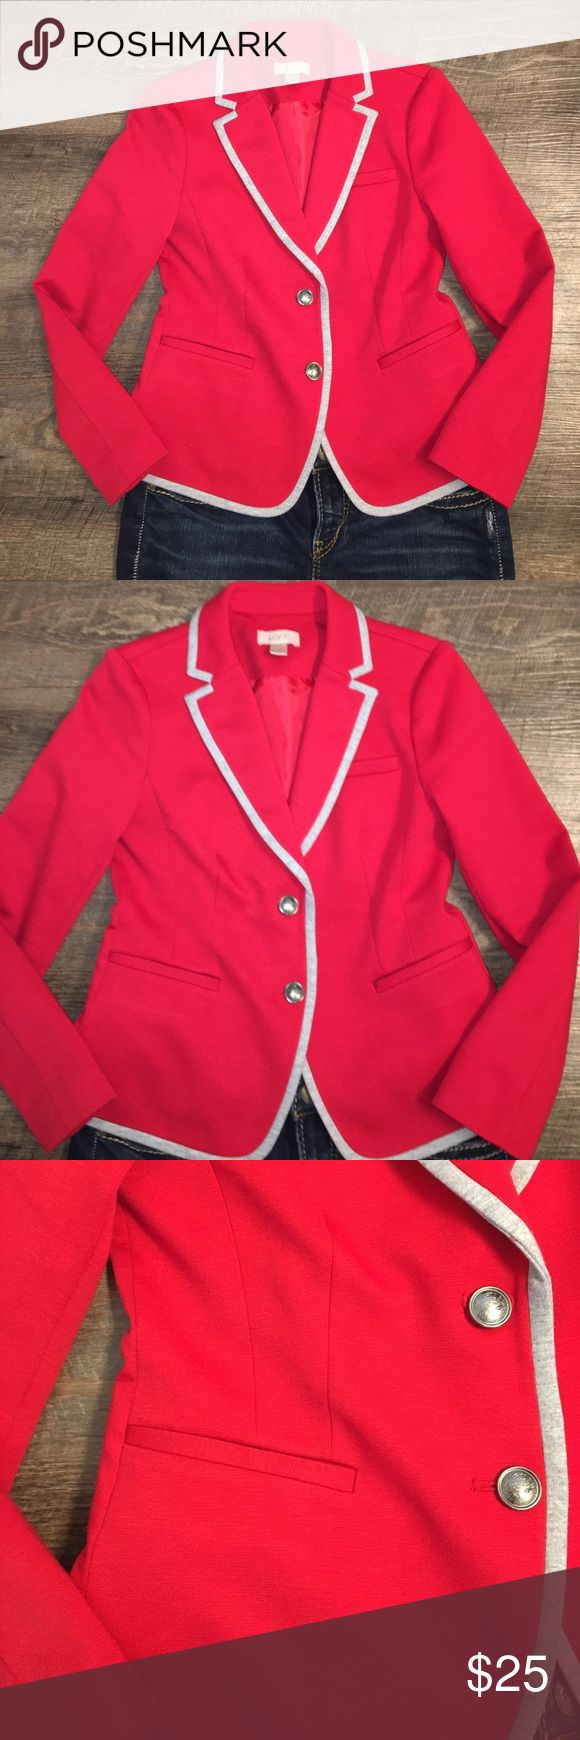 """Ann Taylor Loft Red w/Gray Trim Blazer Size 0 Ann Taylor Loft Red w/Gray Trim Blazer Size 0 EUC, fully lined.  Two button closure, 22 1/4"""" sleeve, 17"""" from armpit to armpit, 20 1/4"""" from top seam to bottom.  Extremely cute and is so fun to wear with jeans and a white t-shirt and heels or to dress up with a black LBD.  Have fun with this blazer! Smoke free, pet free home. LOFT Jackets & Coats Blazers"""